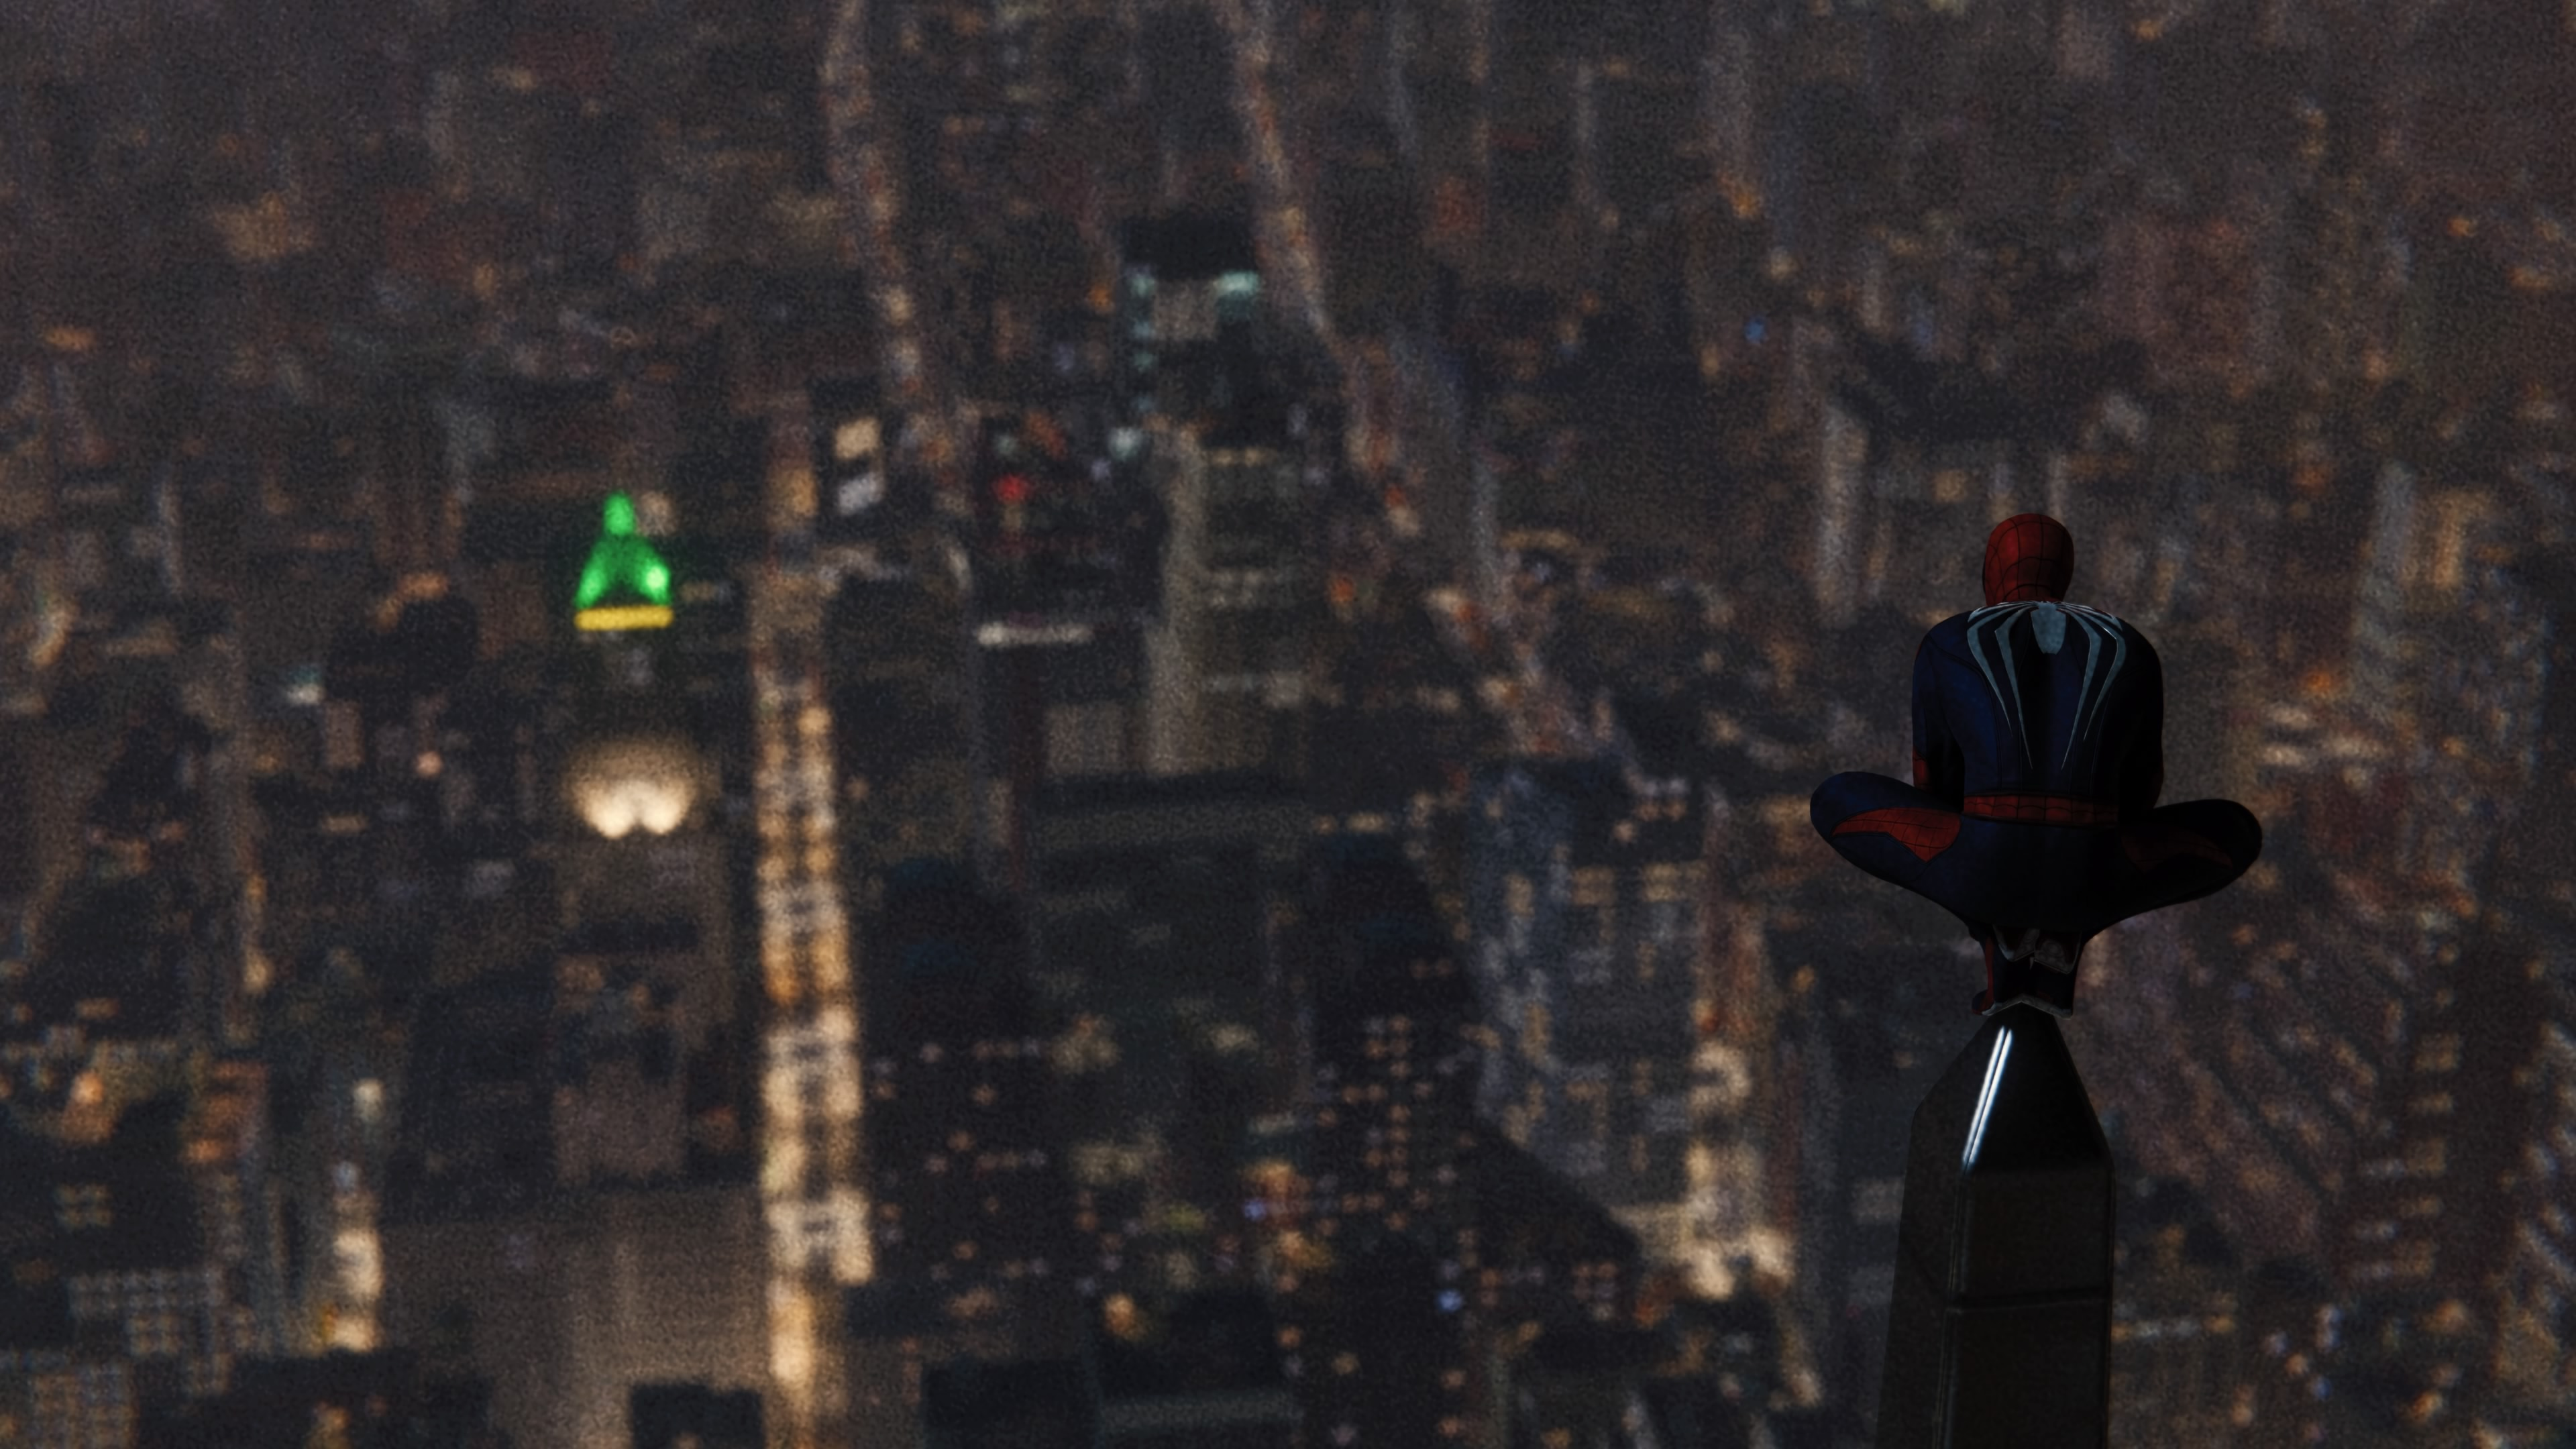 Spider-man surveys his domain.jpg